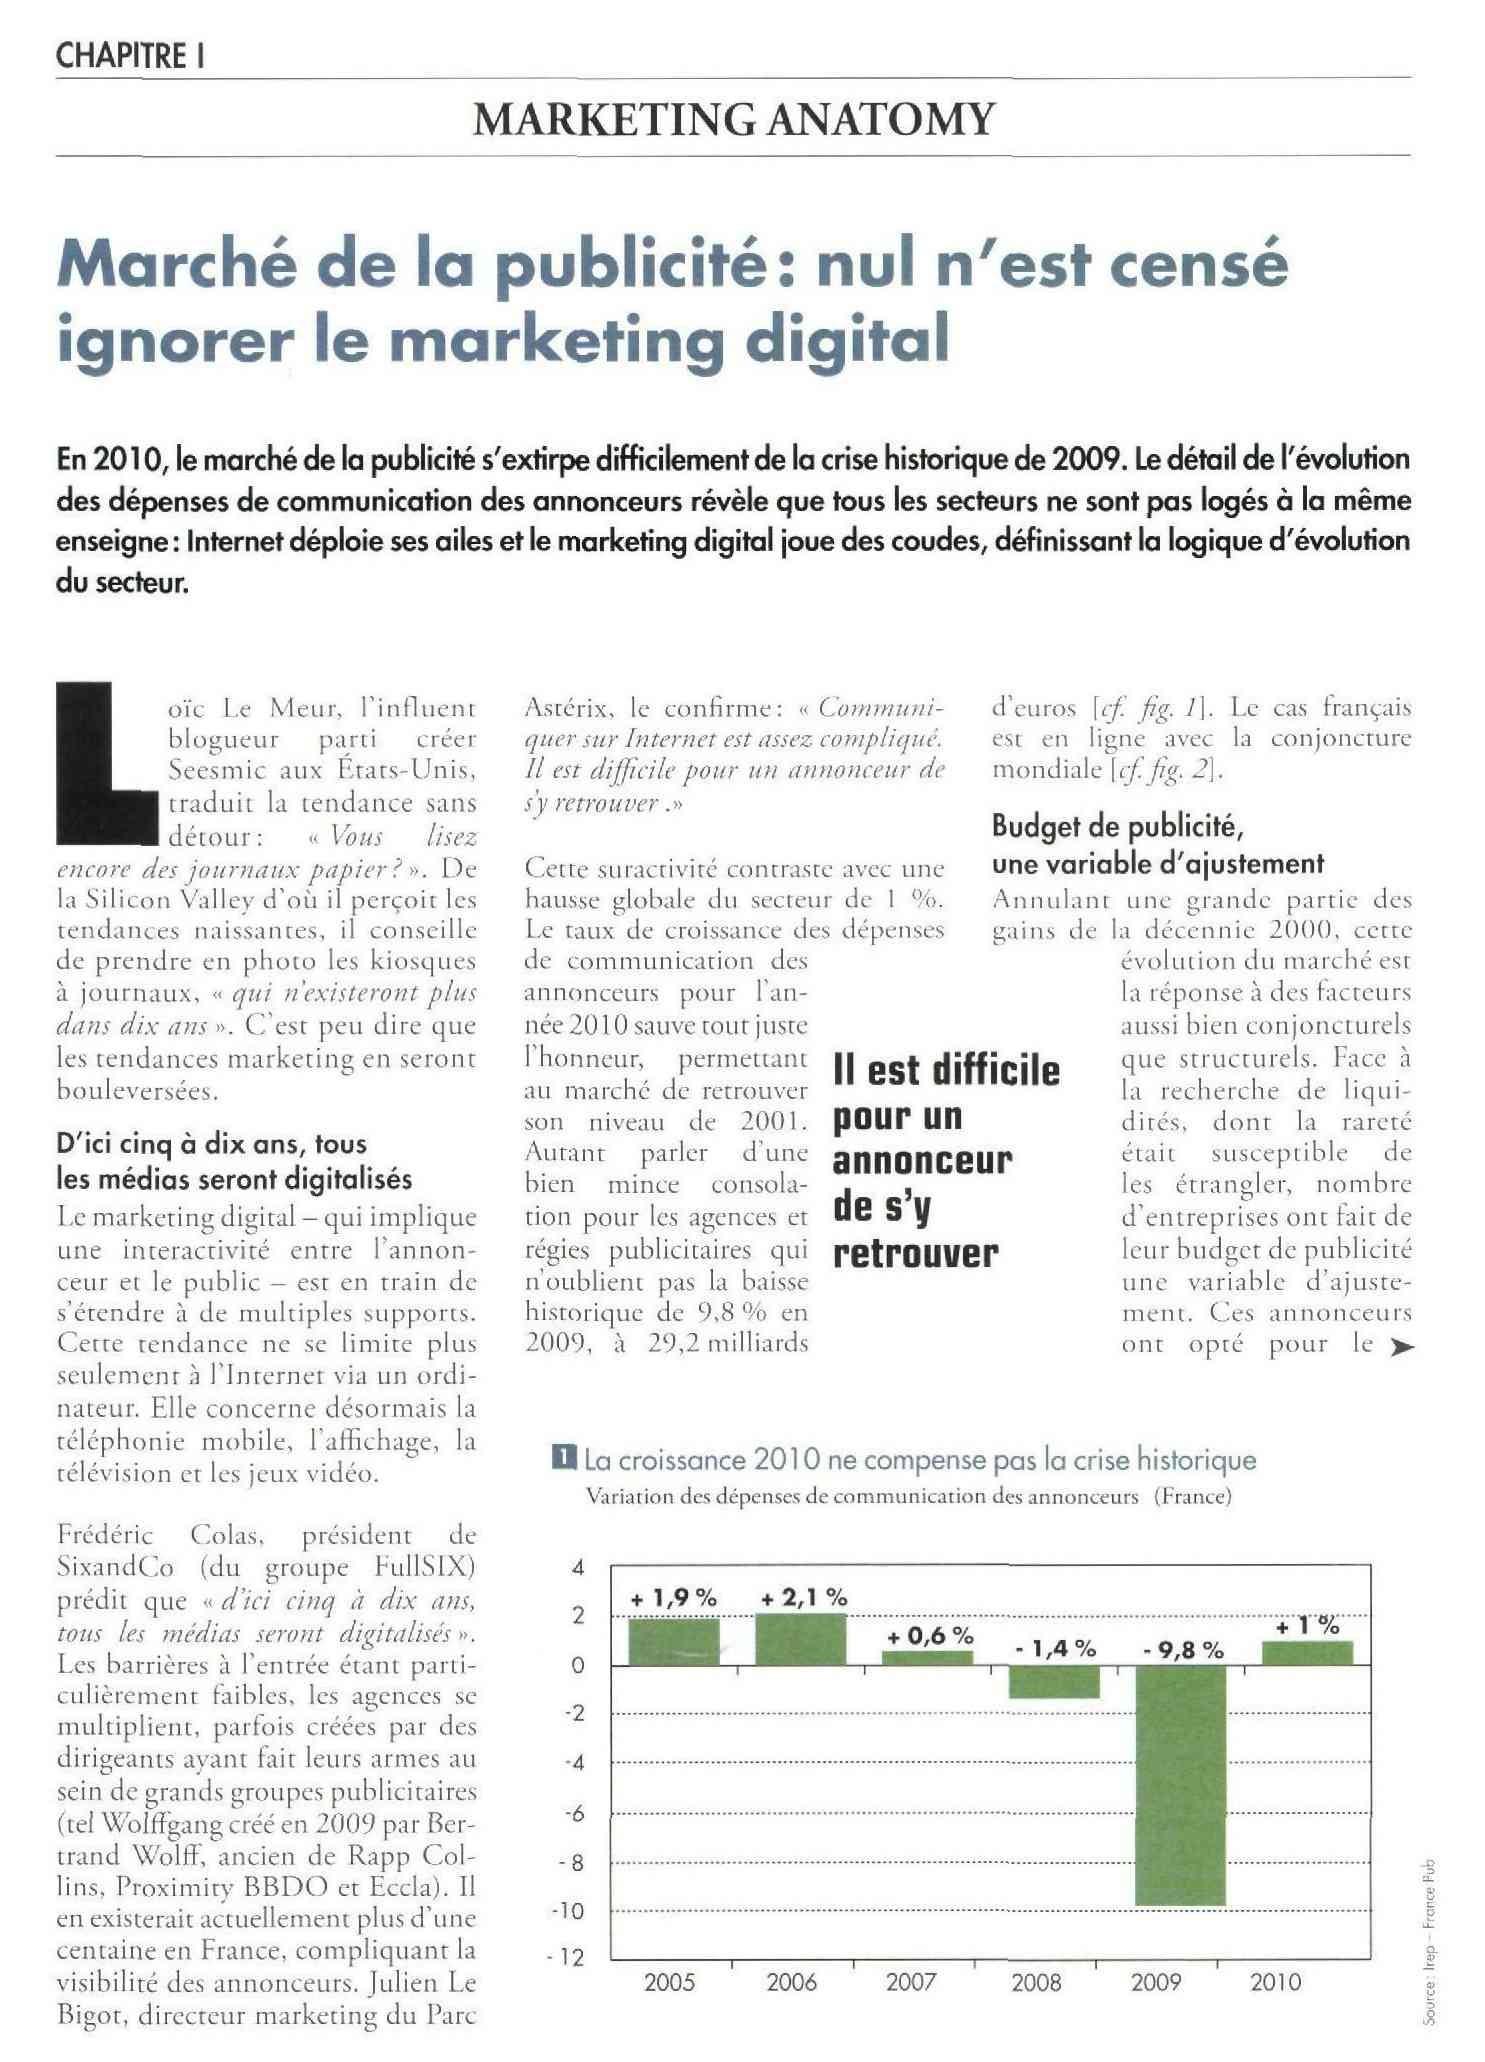 CHAPITRE) MARKETING ANATOMY é de la publicité: nul n'est censé ignorer le marketing digital En&lQ, bmarehé&bpufelkiiêy^ des dépenses de communication des annonceurs révèle que tous les secteurs ne